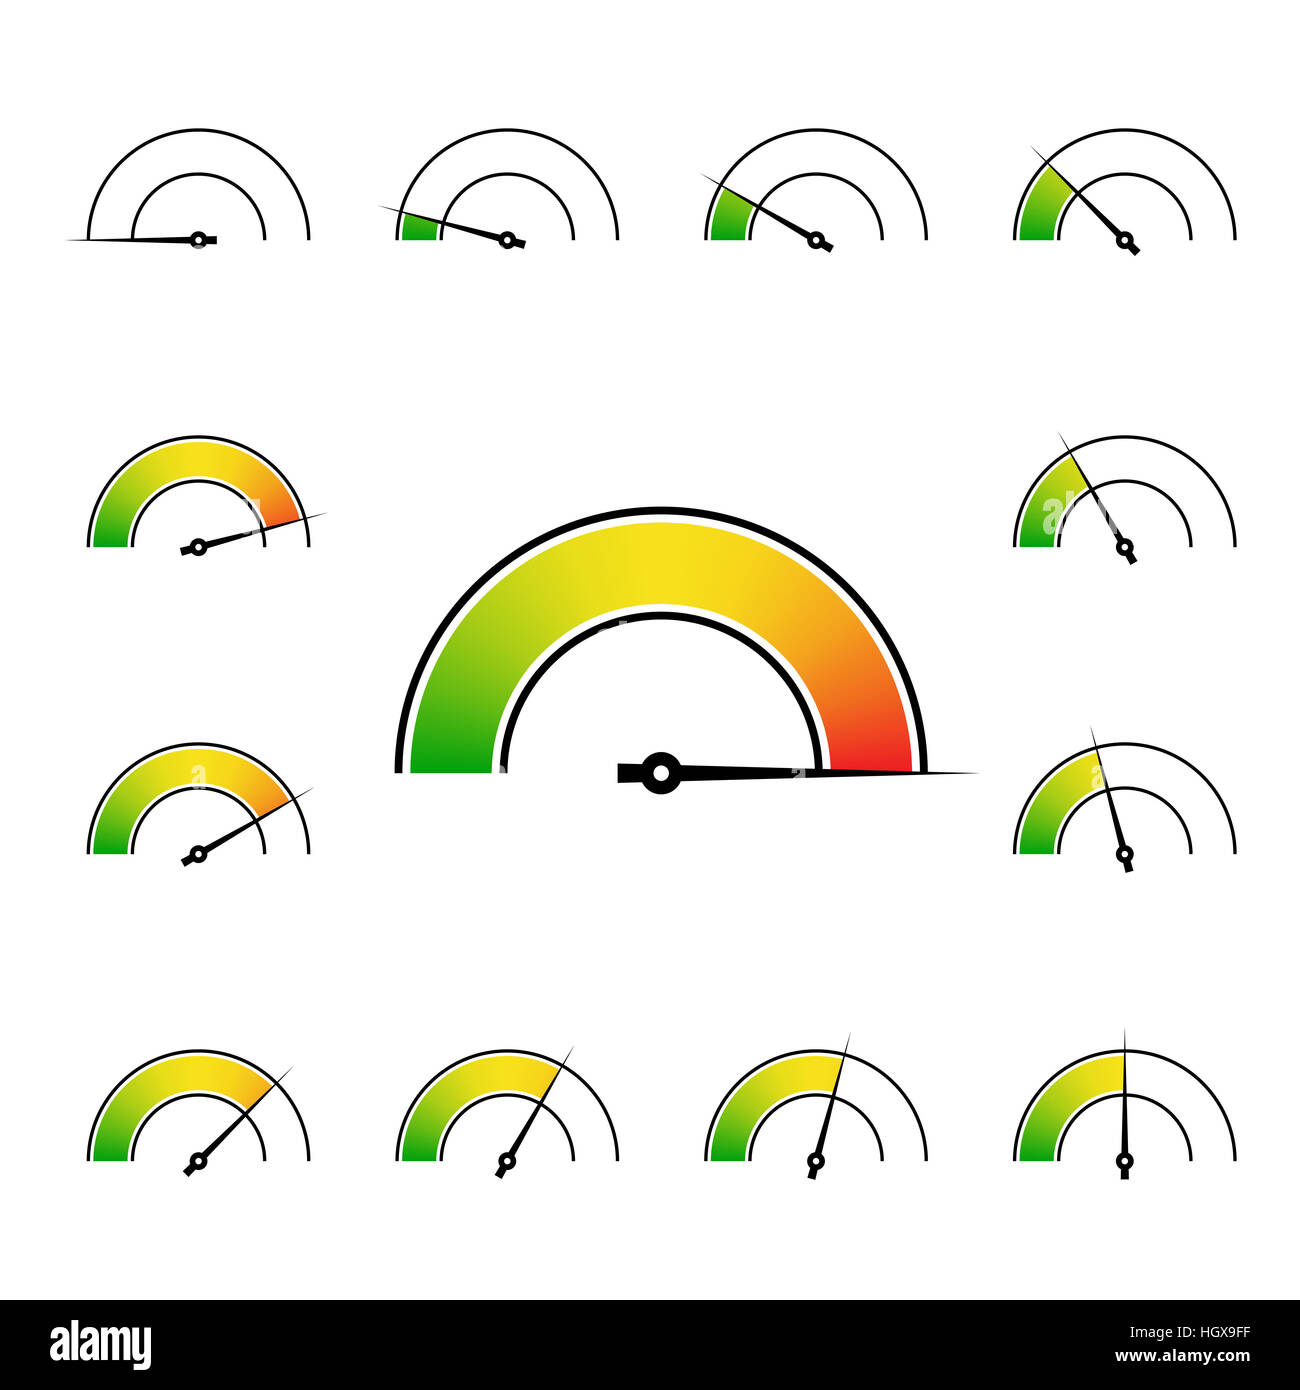 meter signs infographic gauge element from green to red illustration - Stock Image